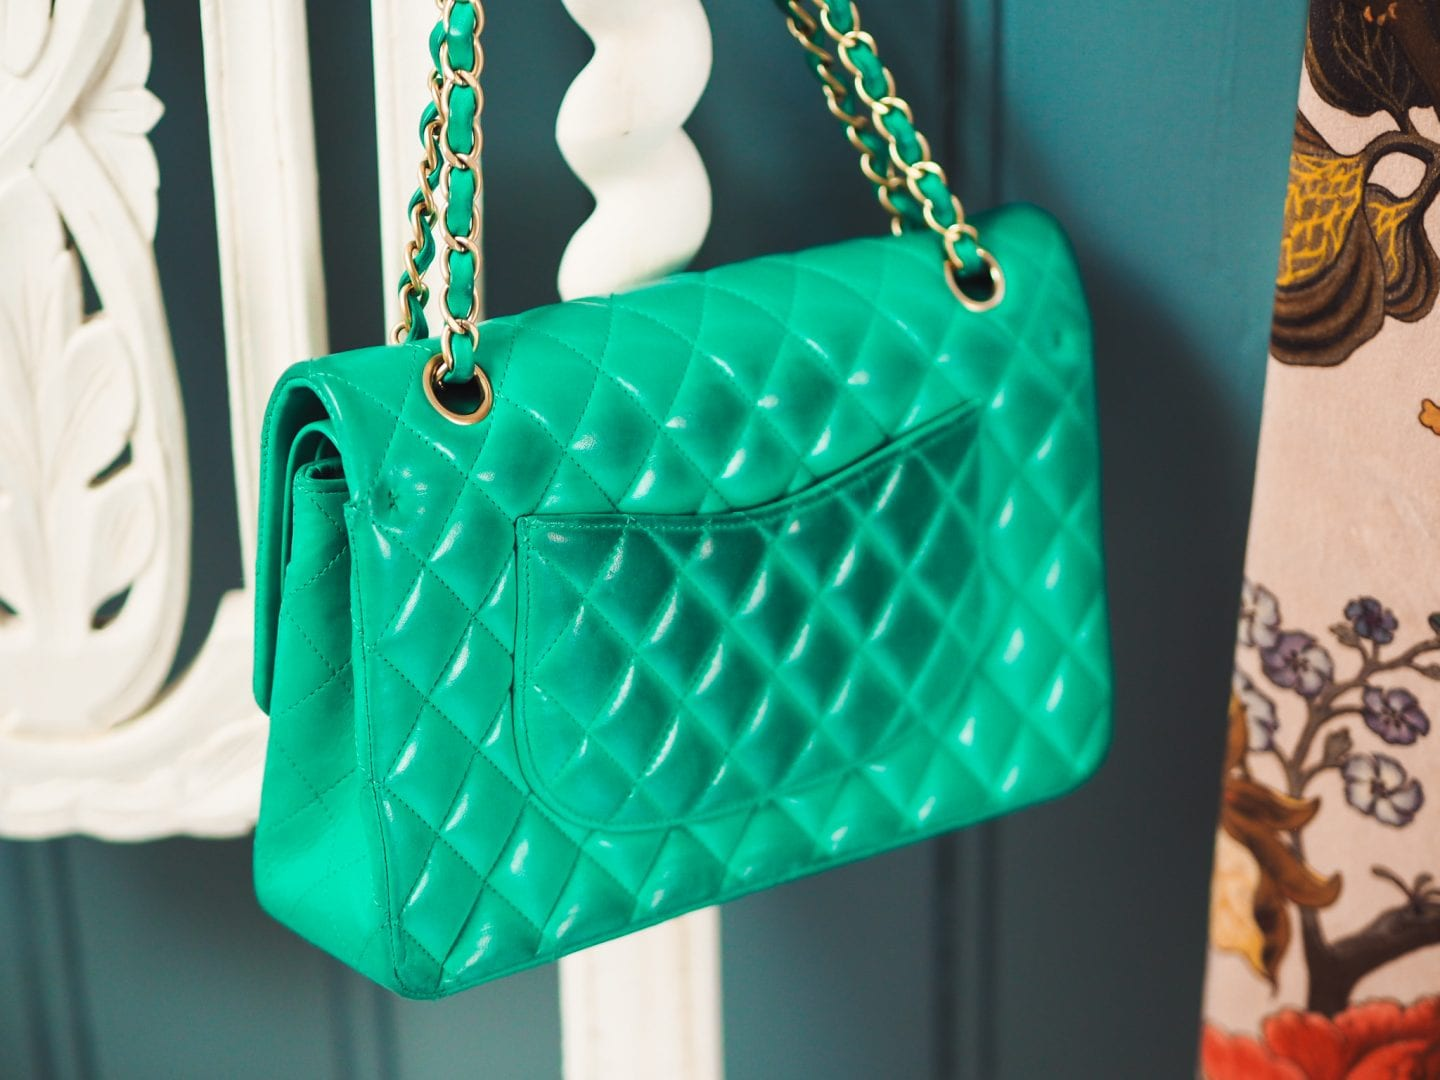 chanel classic flap handbag green colour color transfer results back view bad quality